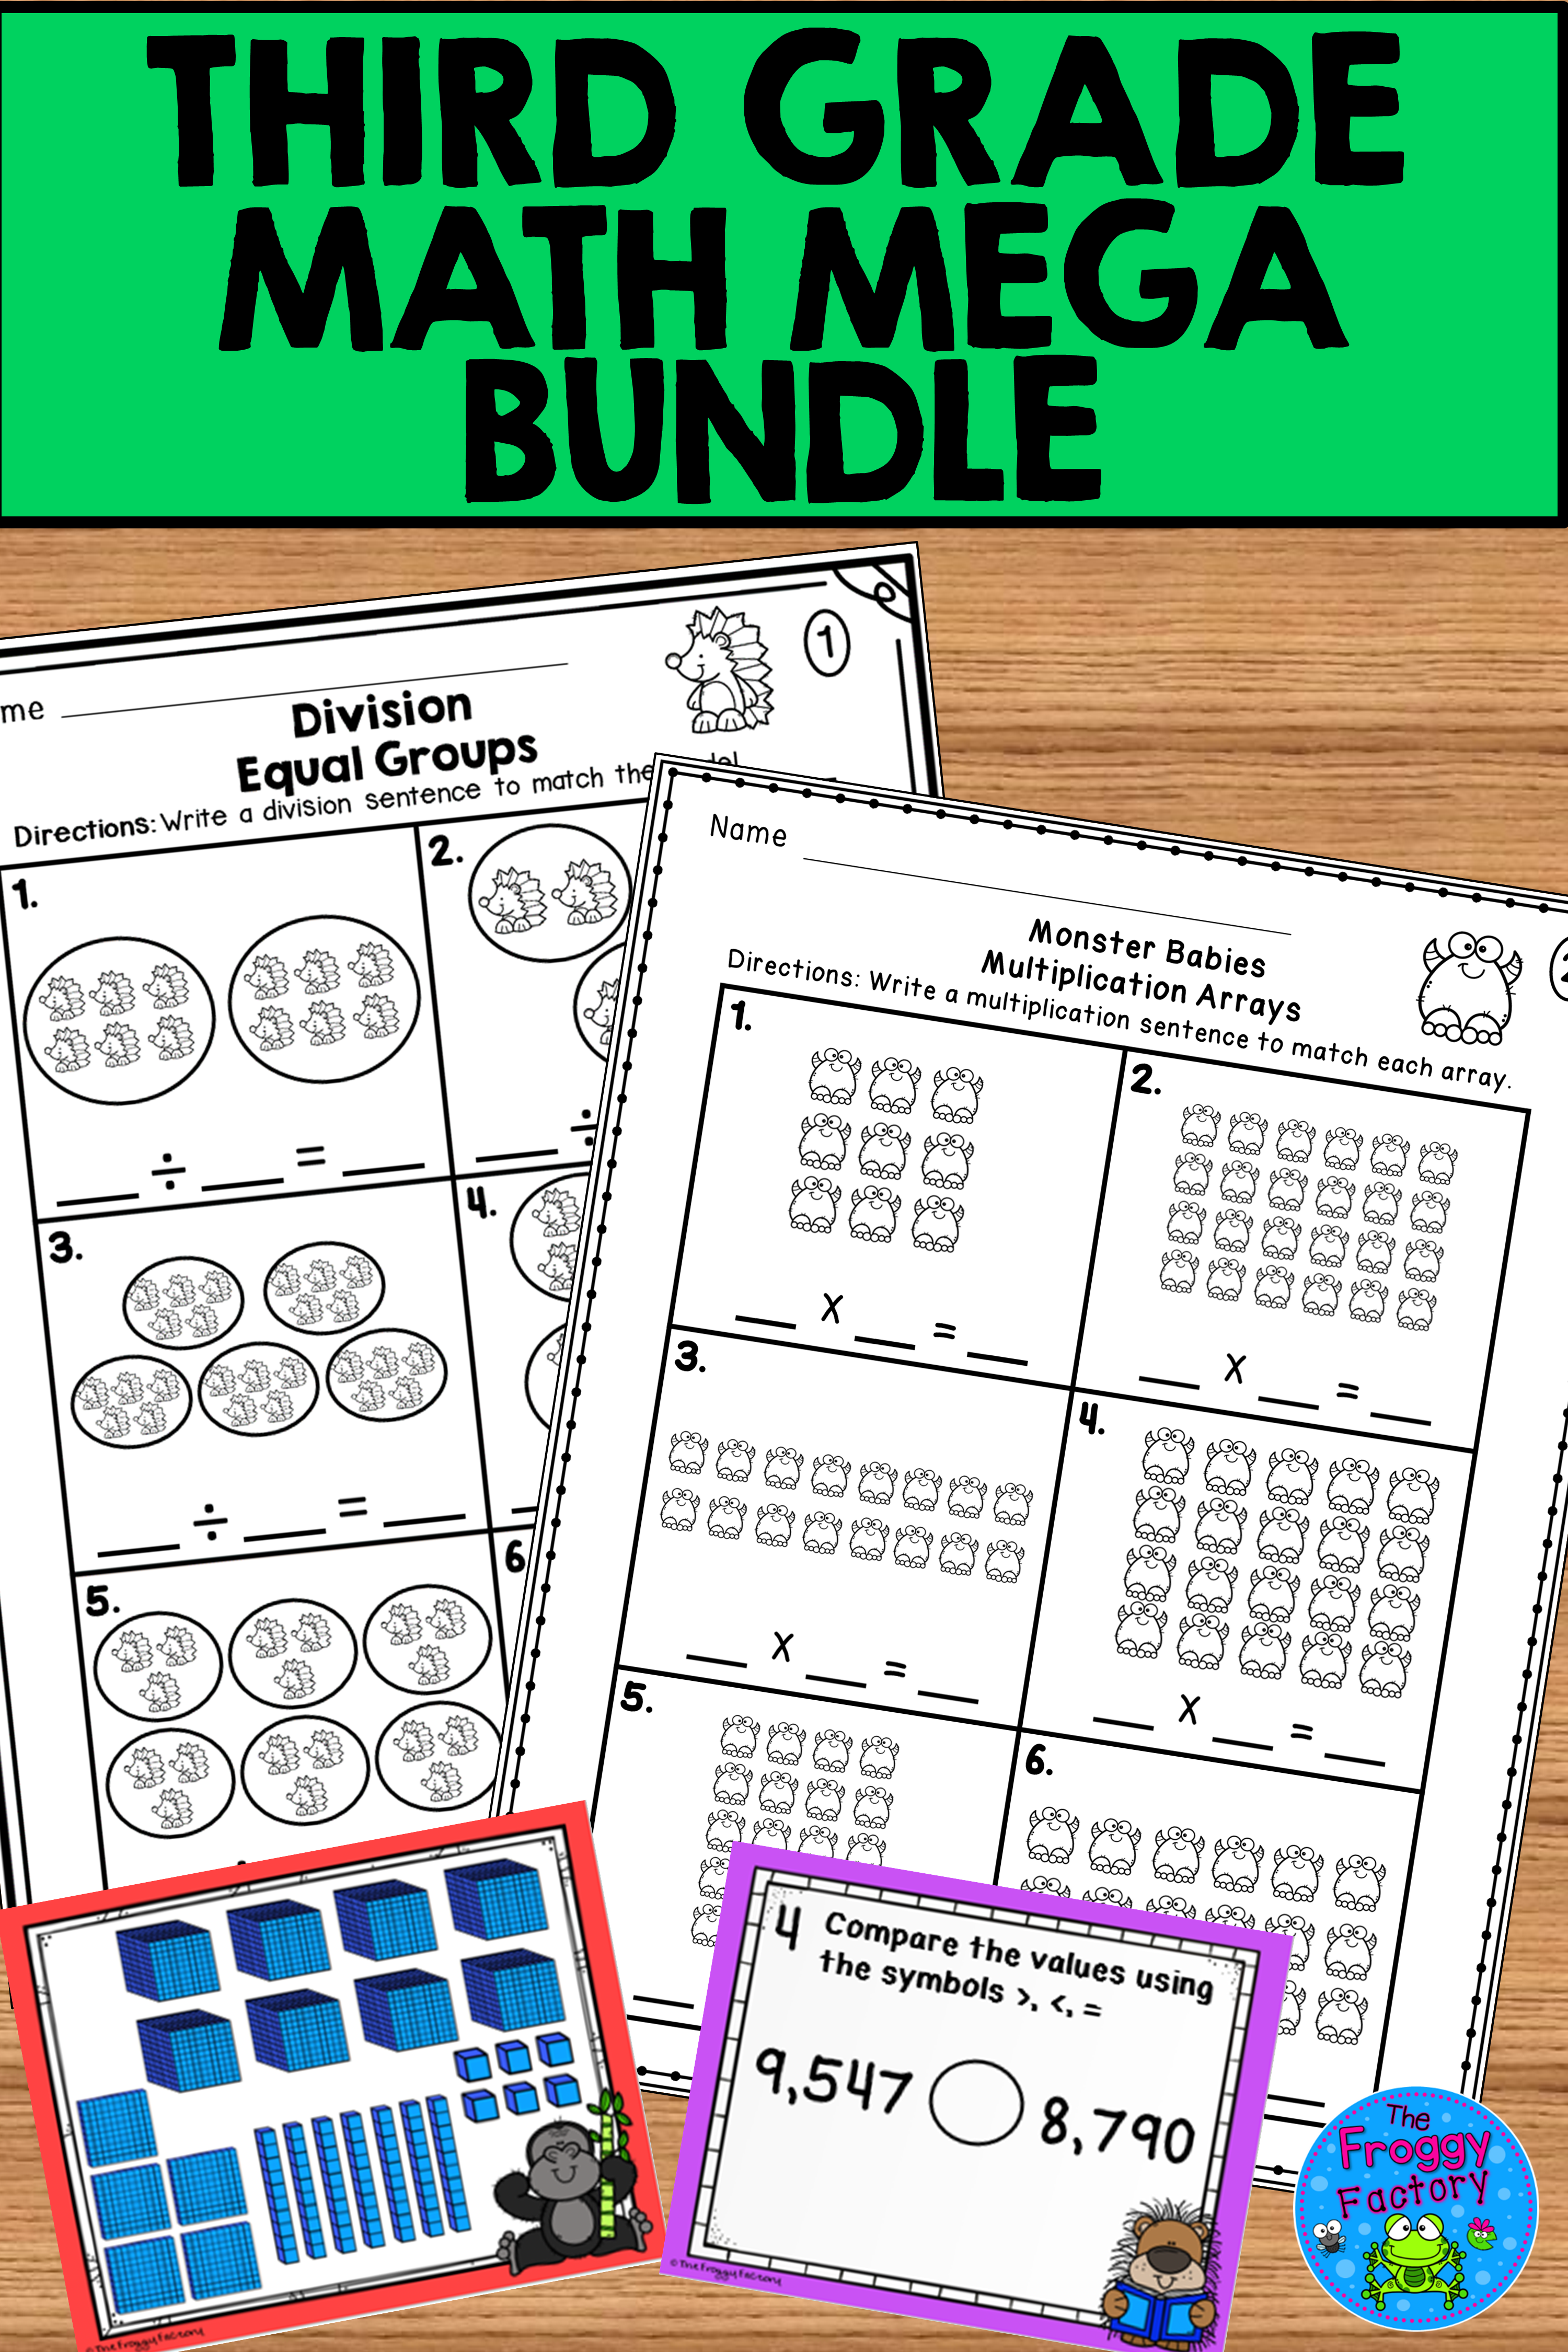 Third Grade Math Mega Bundle